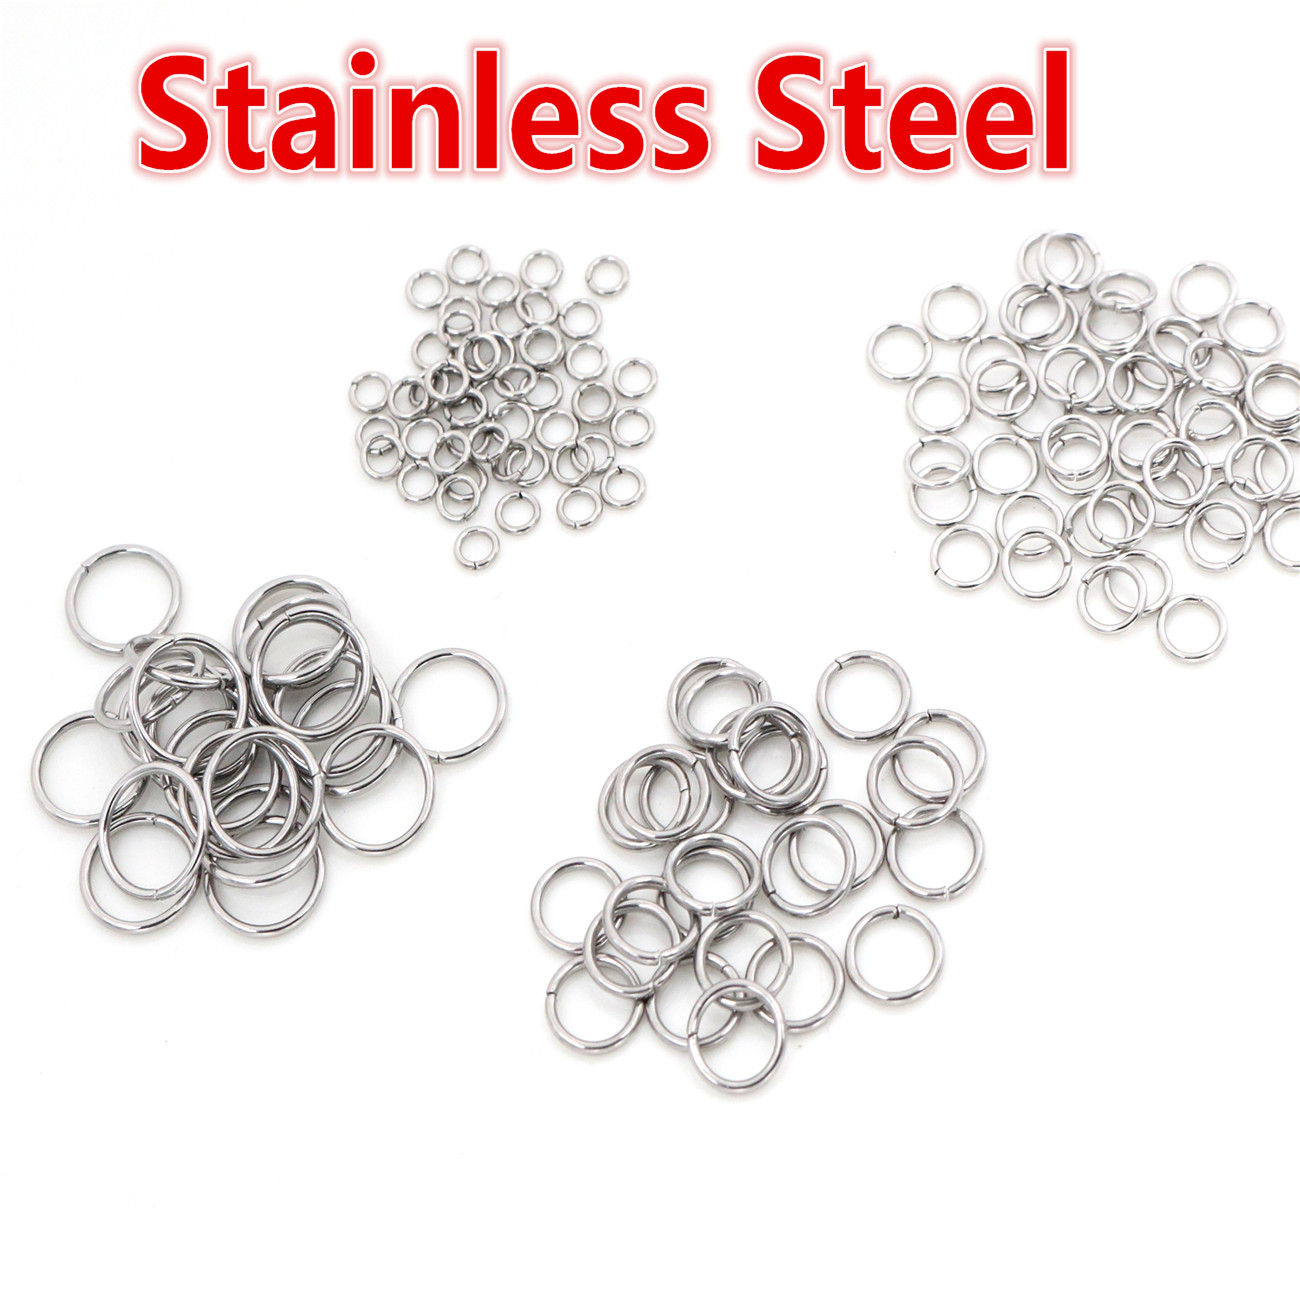 200pcs/Lot 3/4/5/6/7/8/10mm Stainless Steel DIY Jewelry Findings Open Single Loops Jump Rings & Split Ring For Jewelry Making